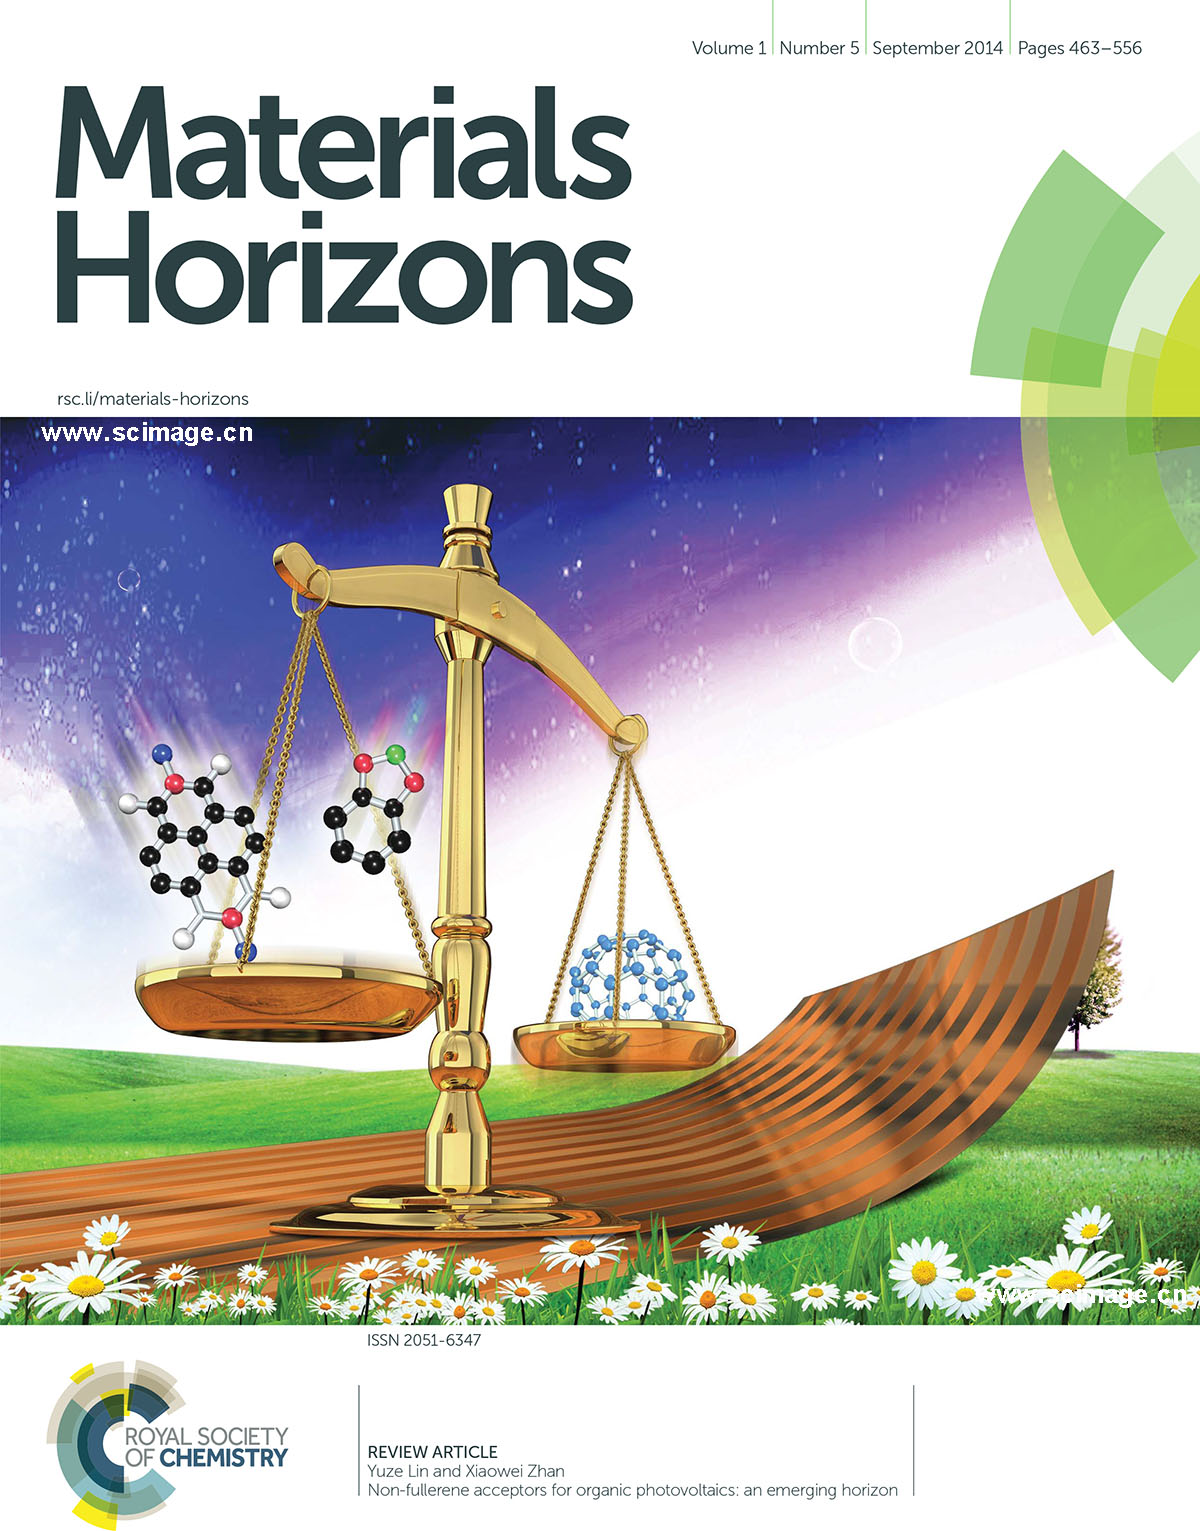 Non-fullerene acceptors for organic photovoltaics: an emerging horizon